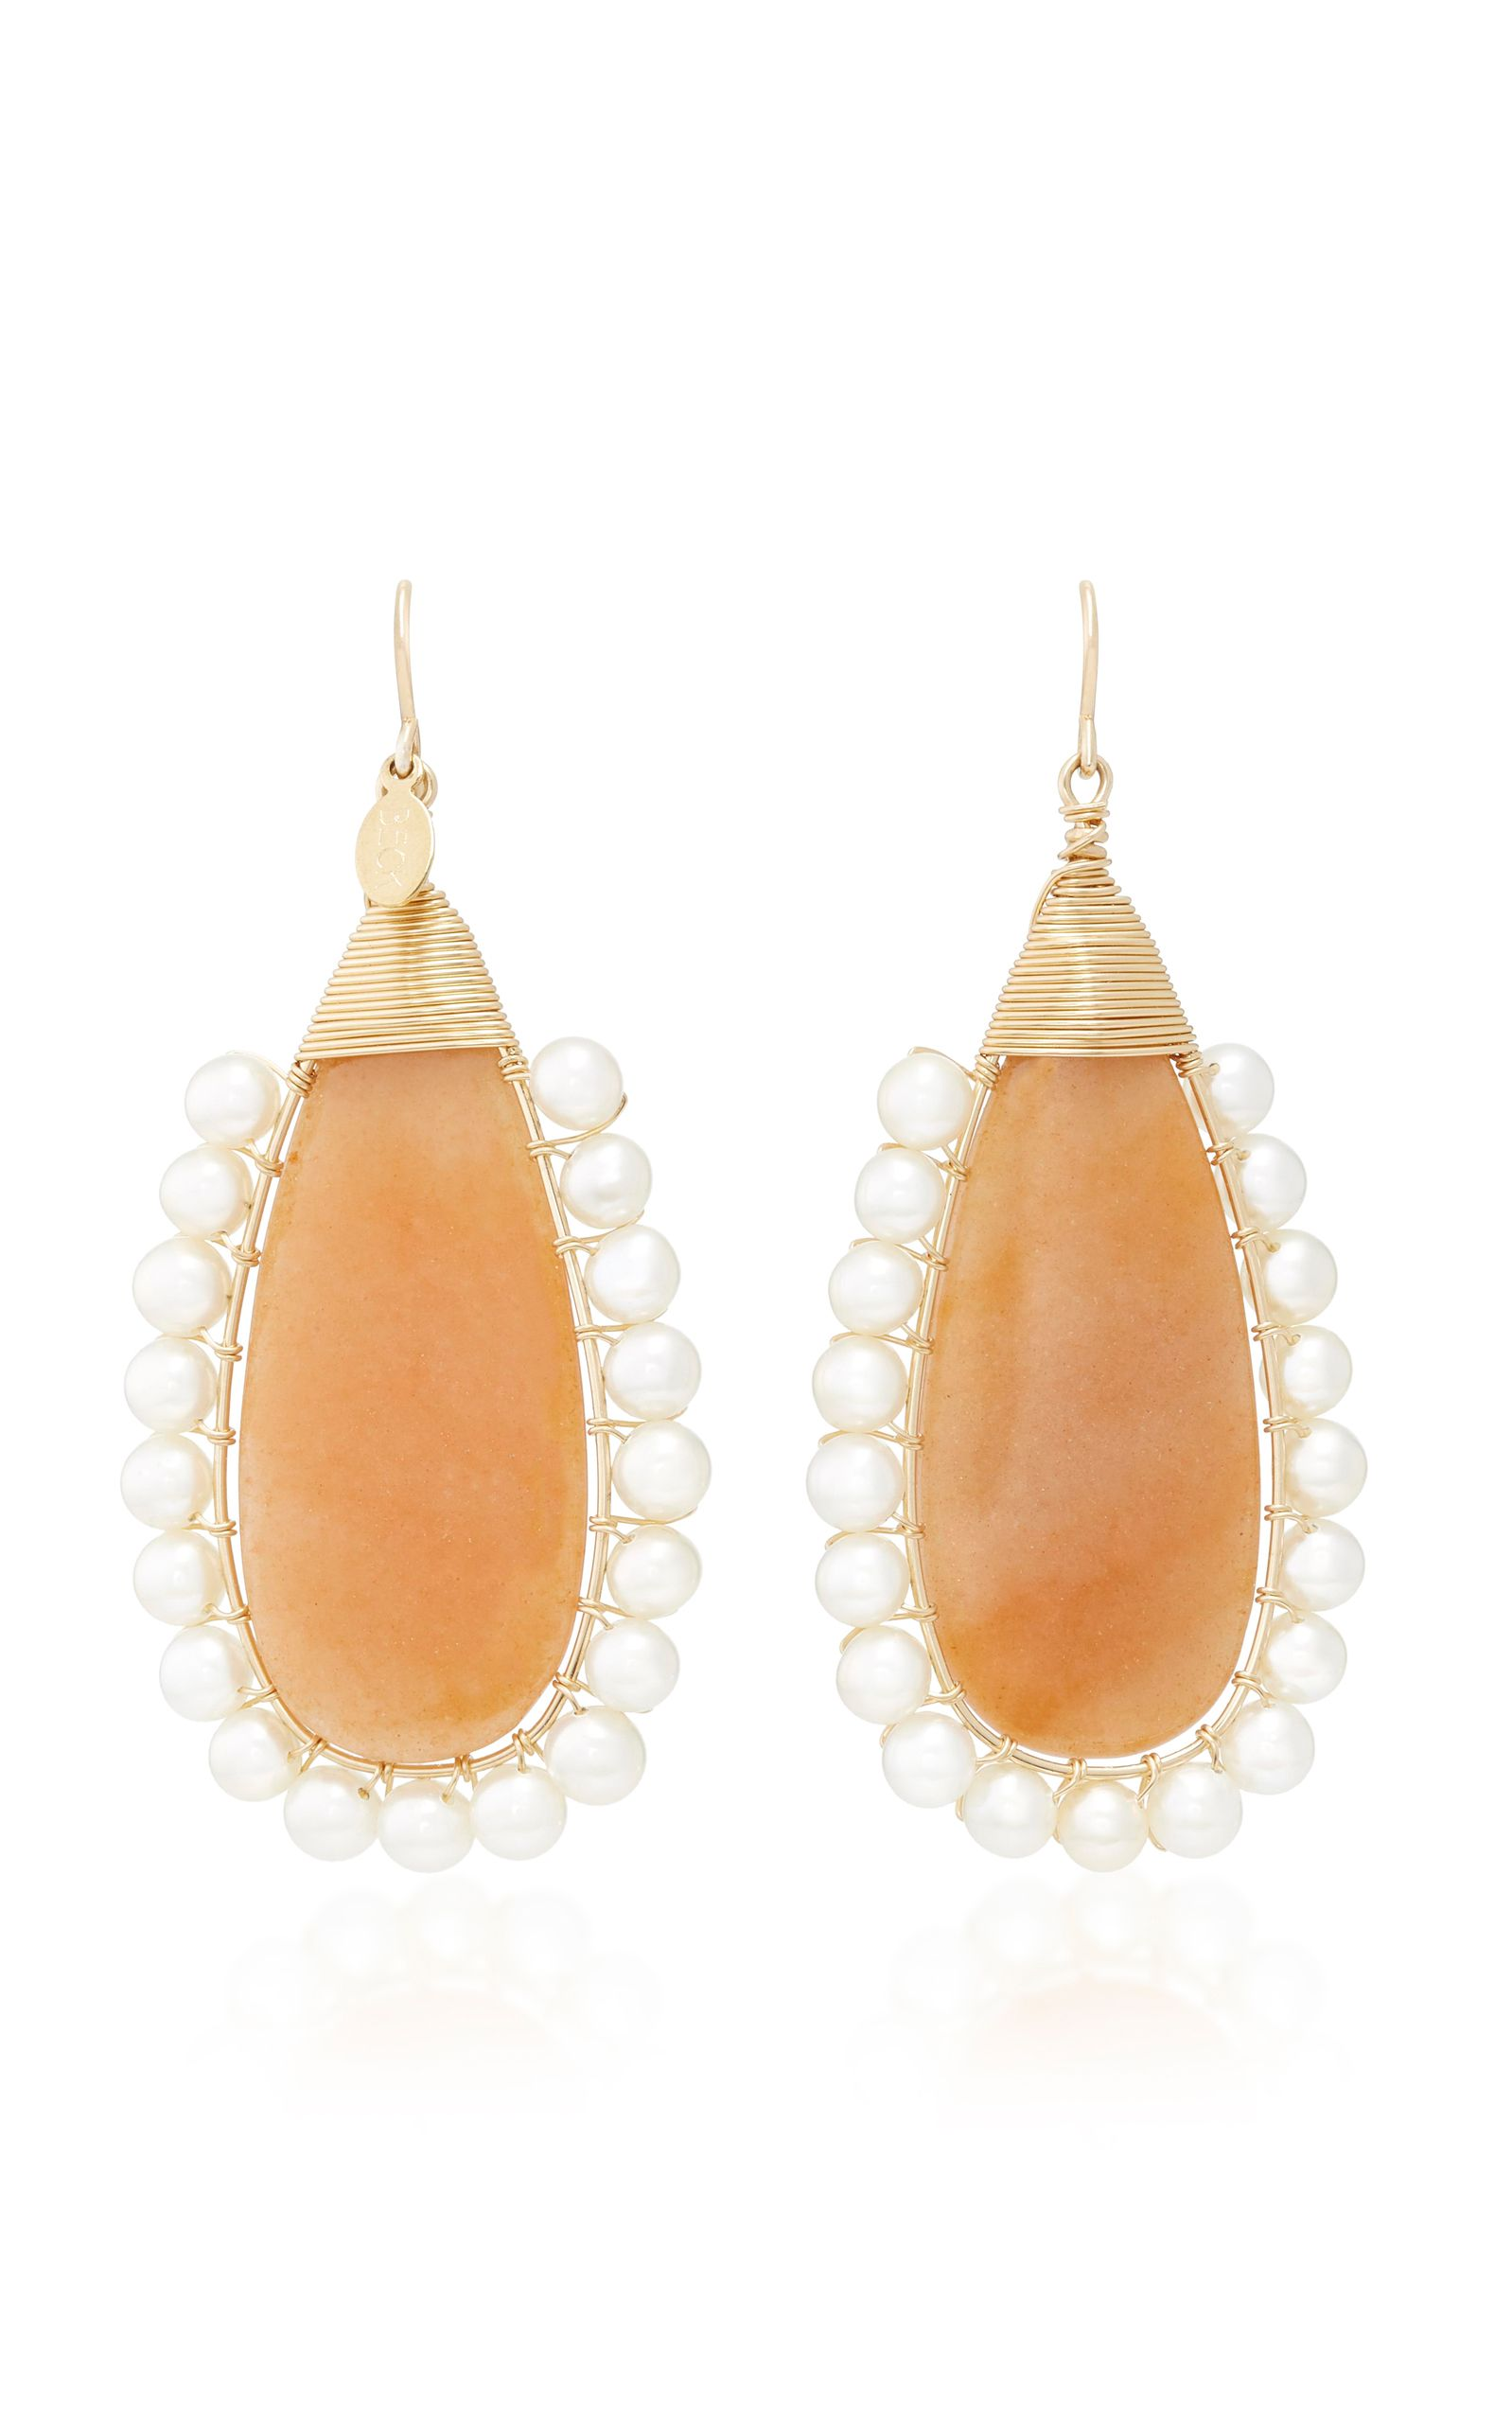 Lolita 14K Gold Adventurine and Pearl Drop Earrings Beck Jewels